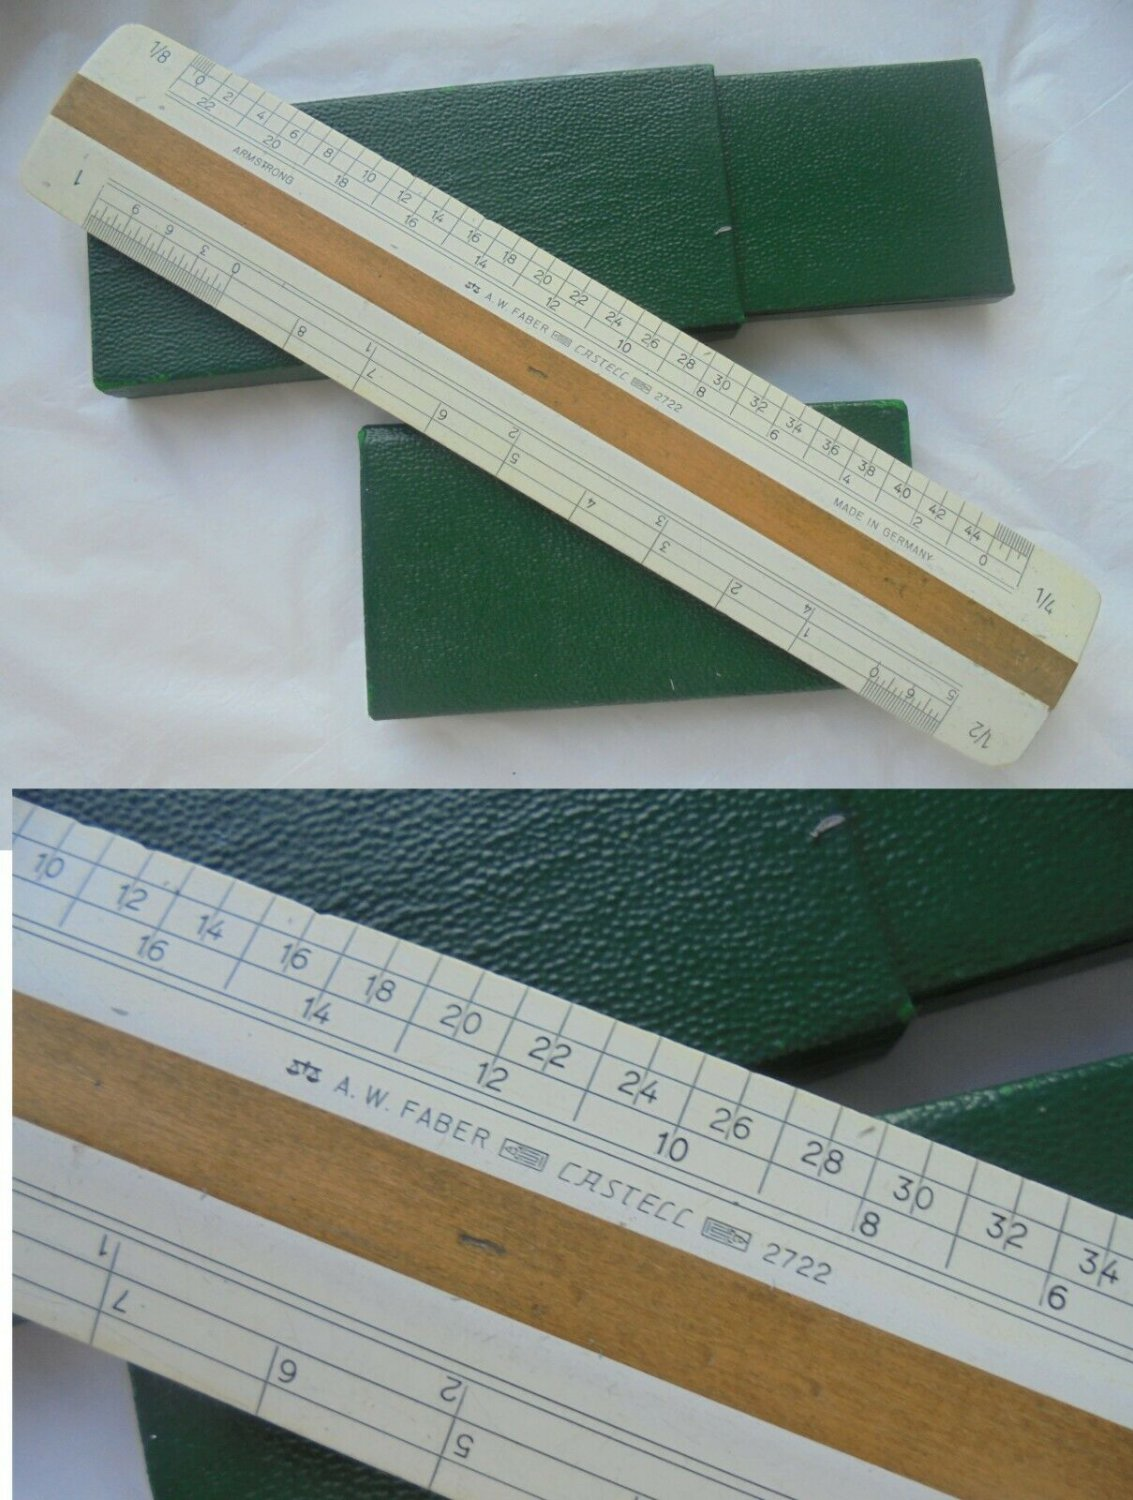 Slide ruler FABER CASTELL MODEL 2722 in wood Original from 1970s in box